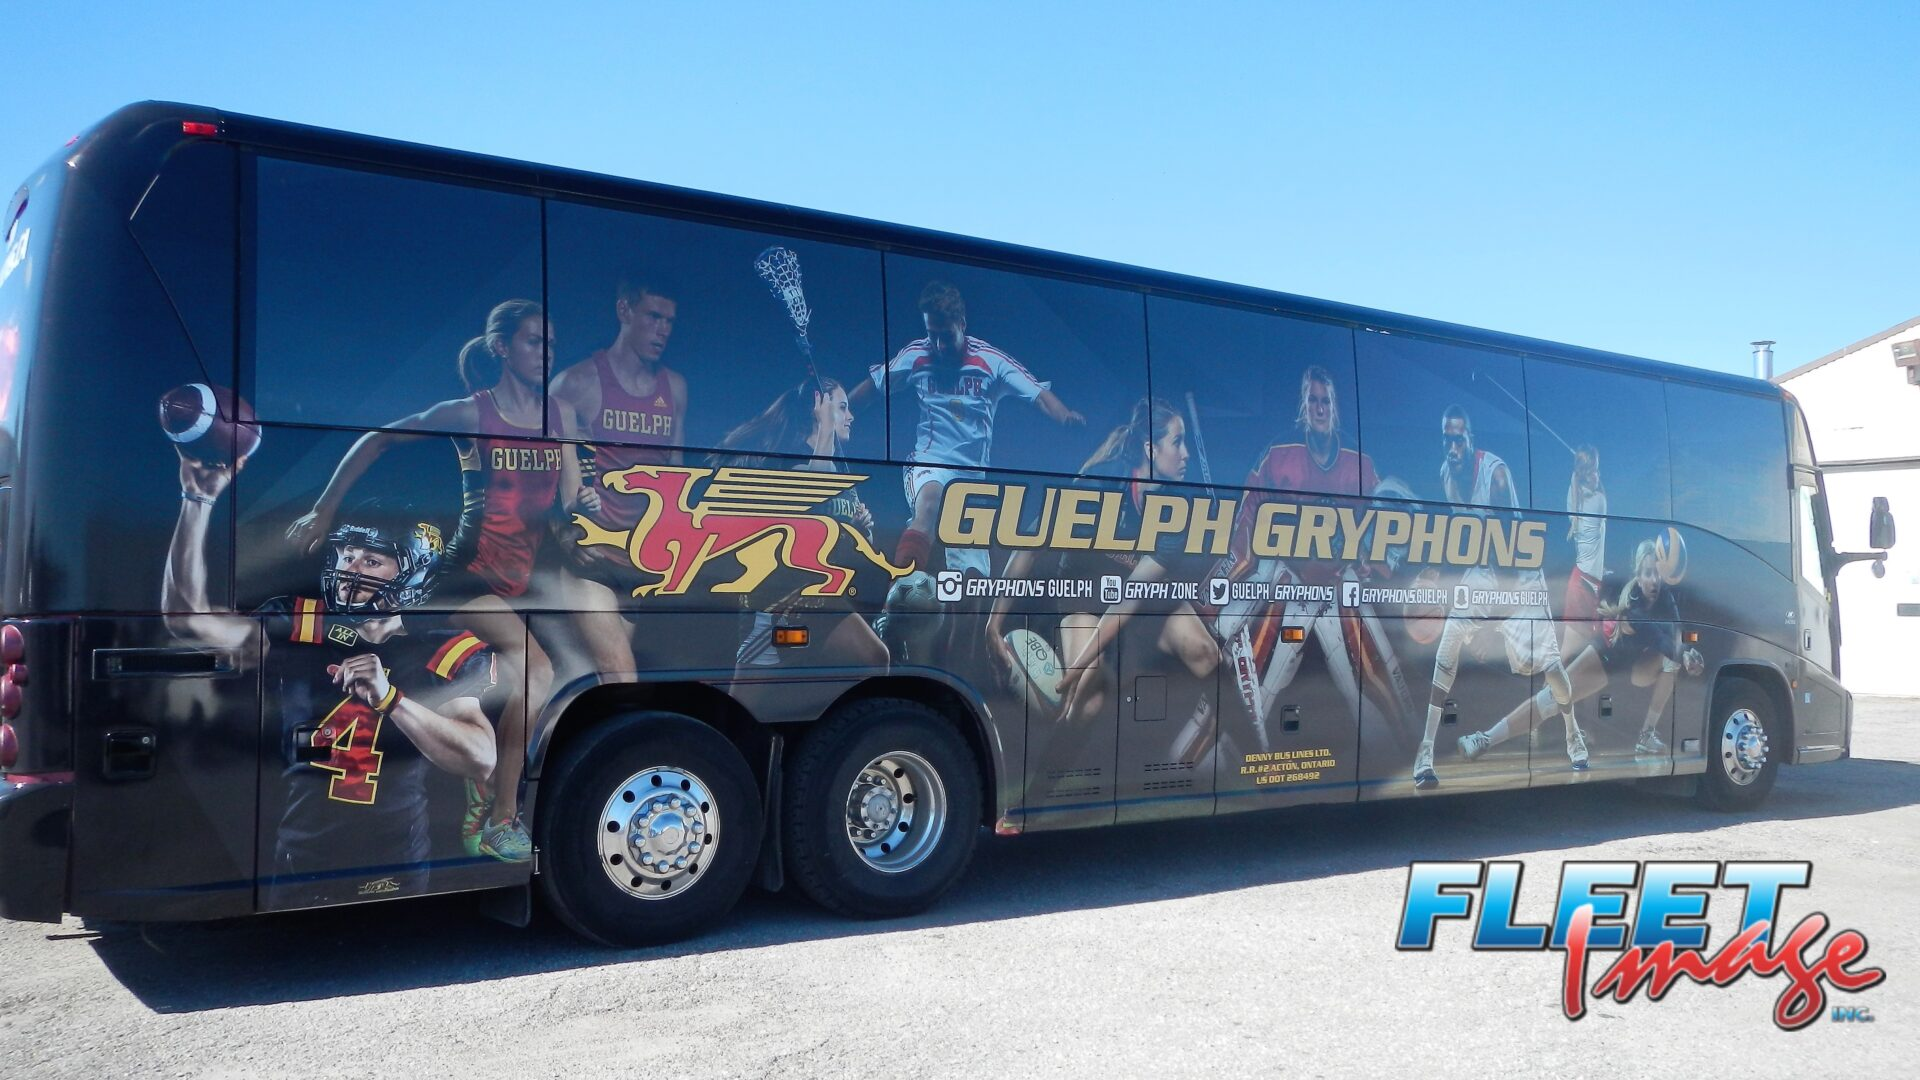 GUELPH GRYPHONS decal sticker on a truck